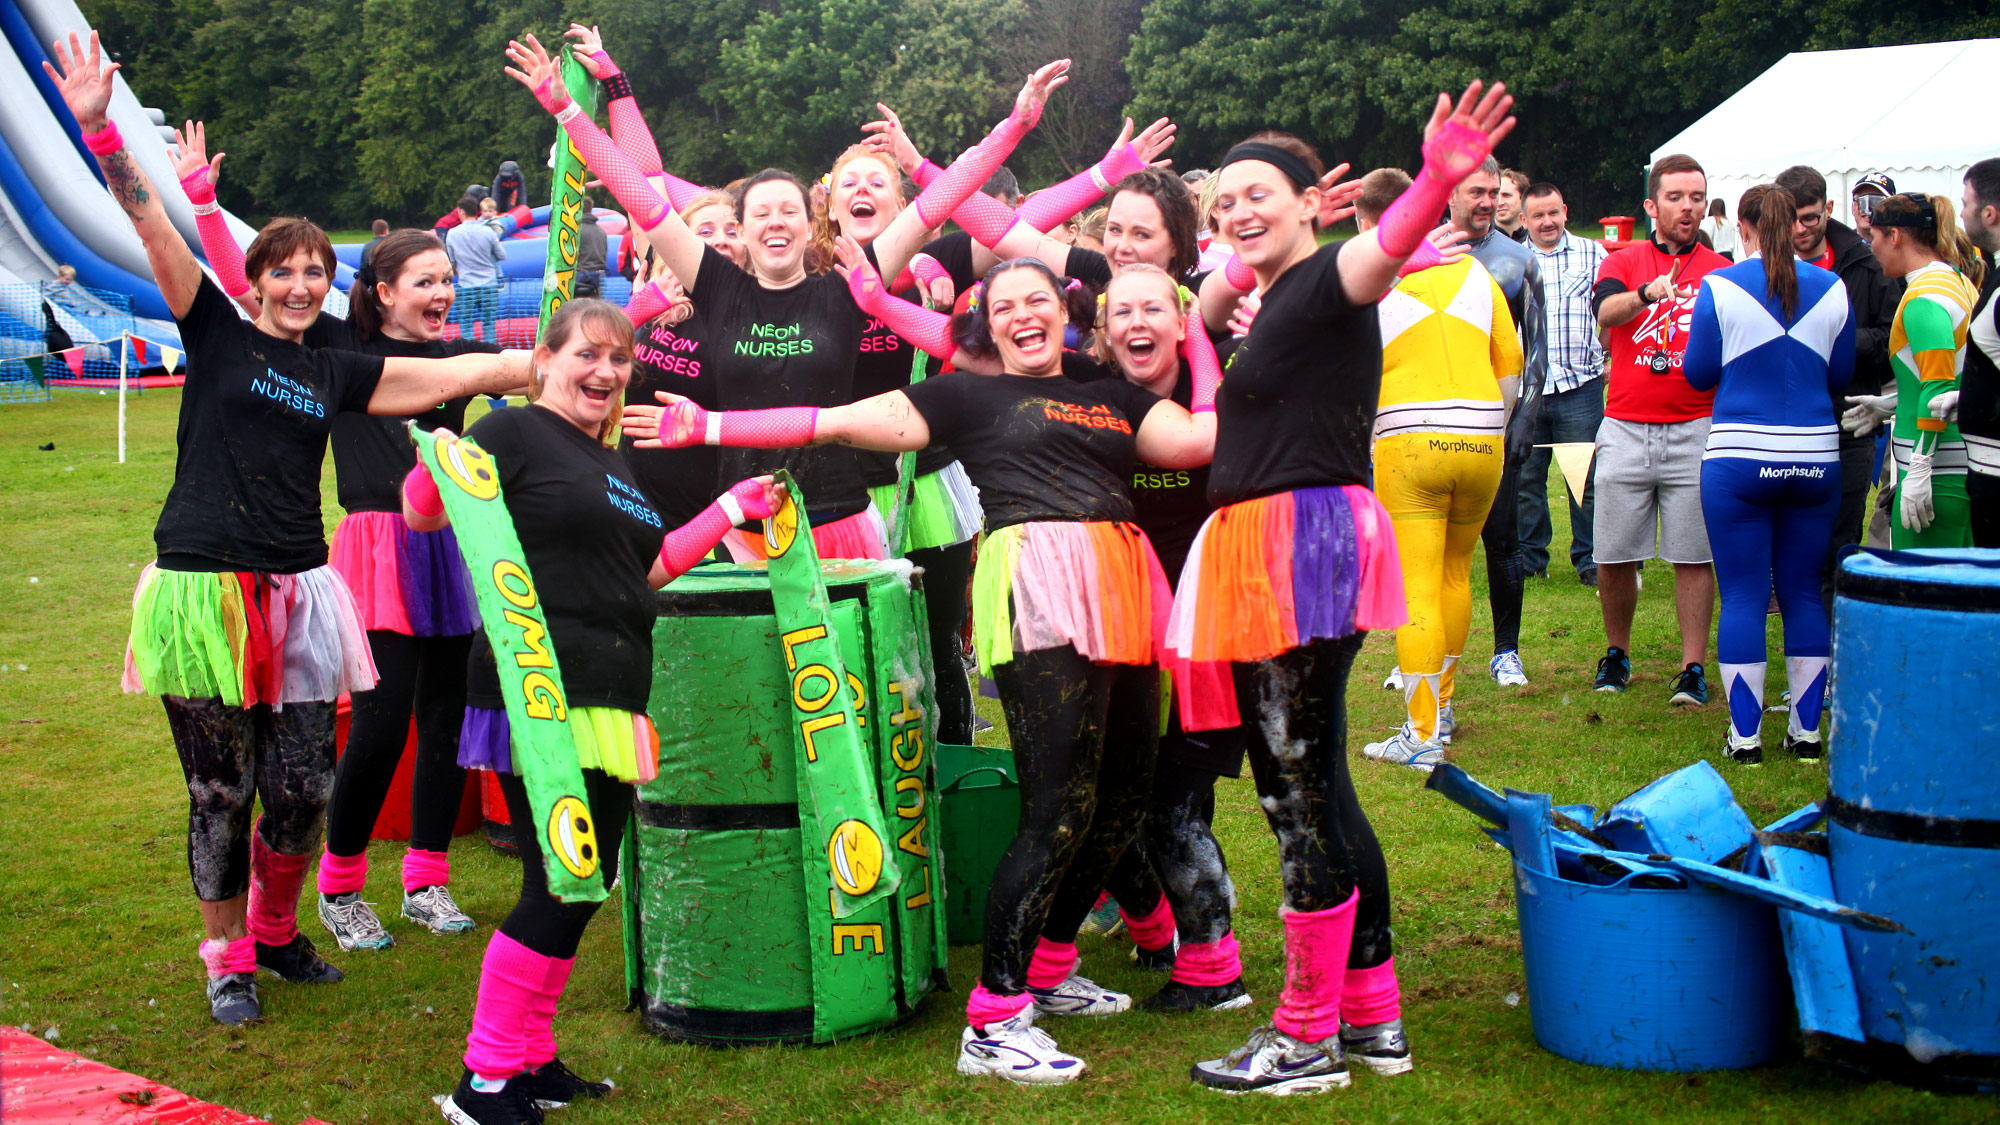 Charity It's A Knockout team having fun